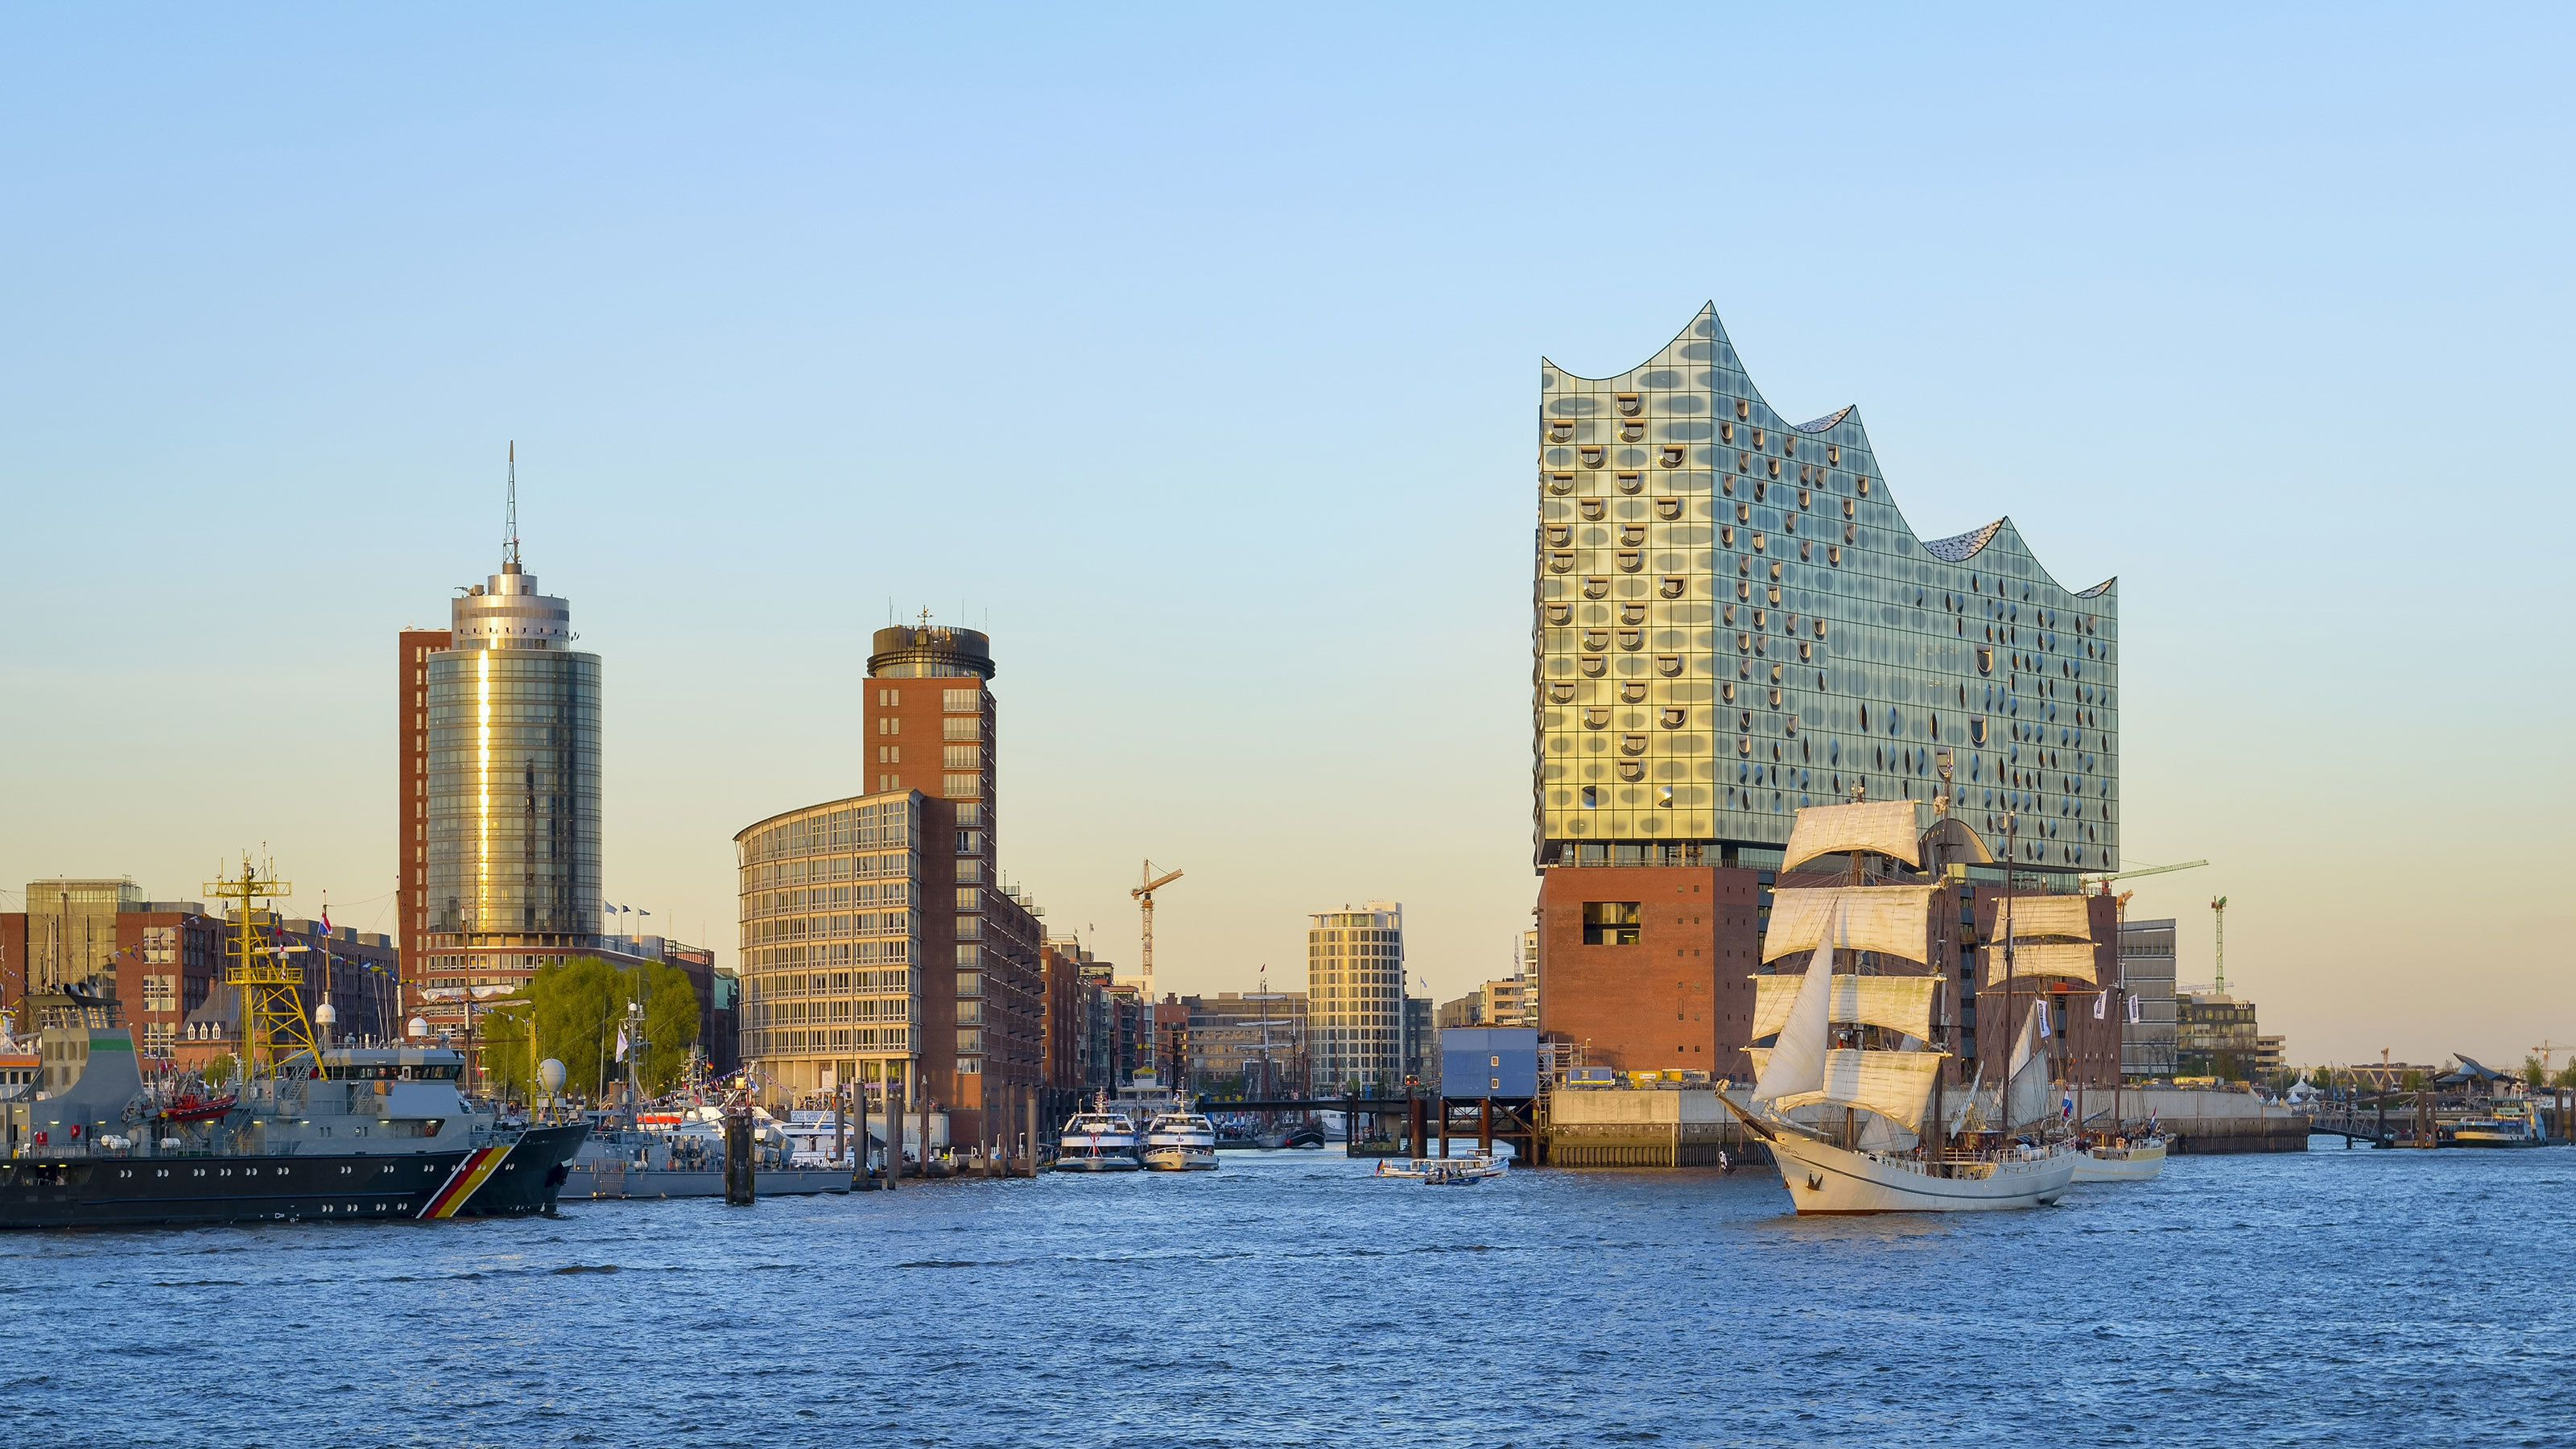 View from water way of Elbphilharmonie concert hall in Hamburg